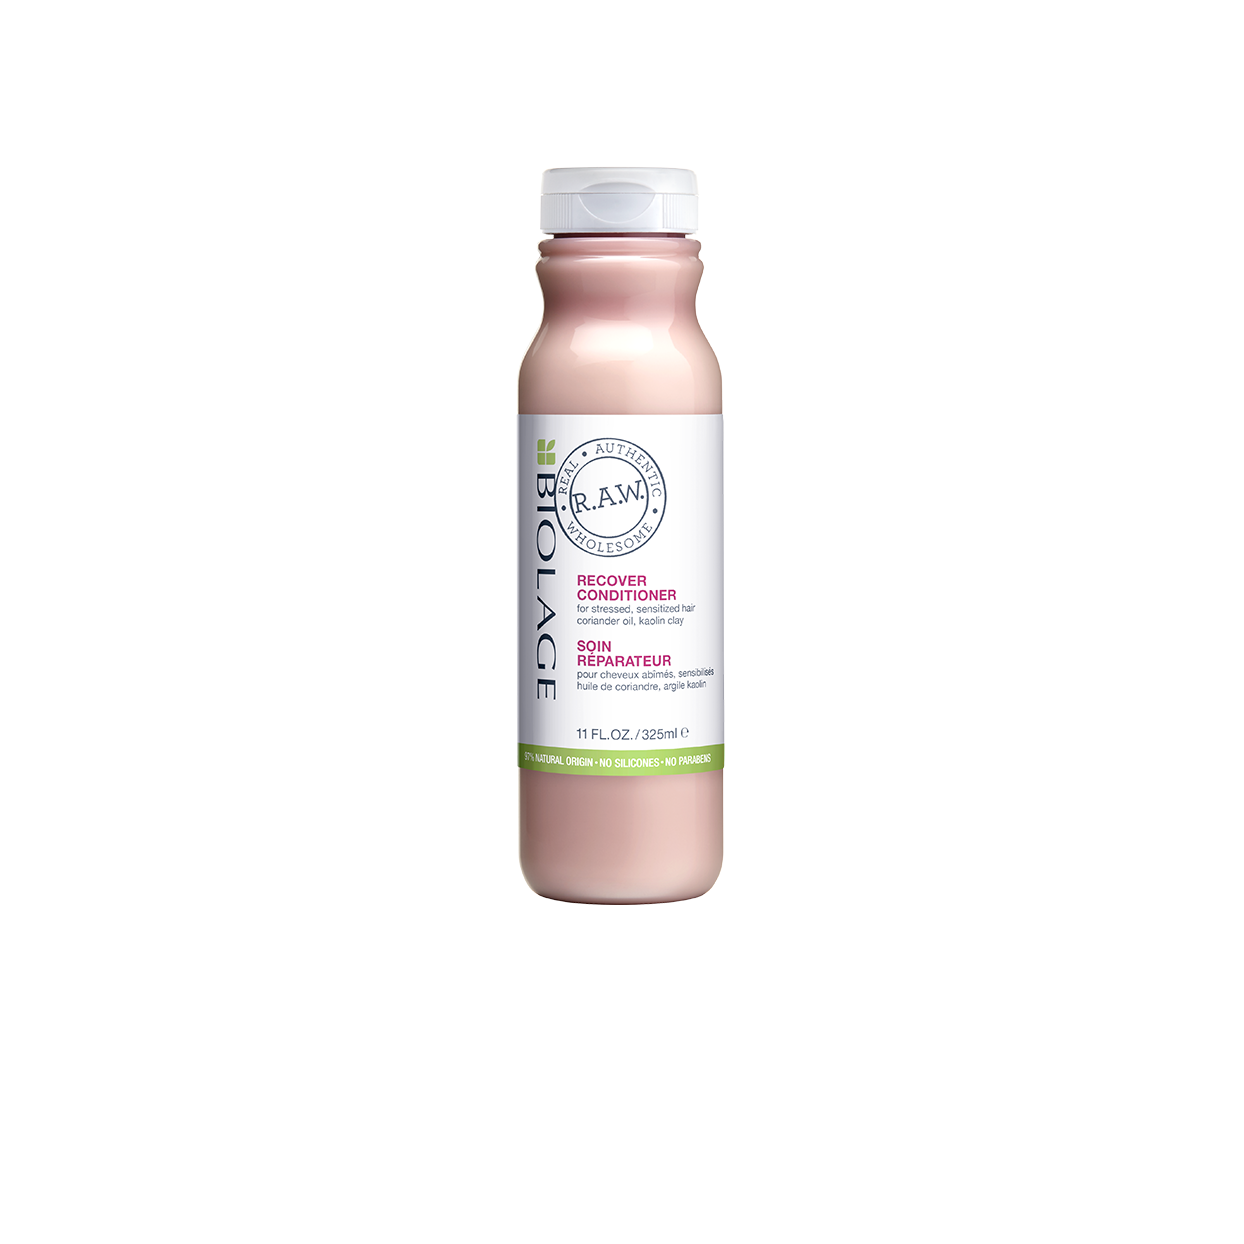 Biolage RAW Recover Damaged Hair Conditioner Natural Replenishing Conditioner for Damaged Hair